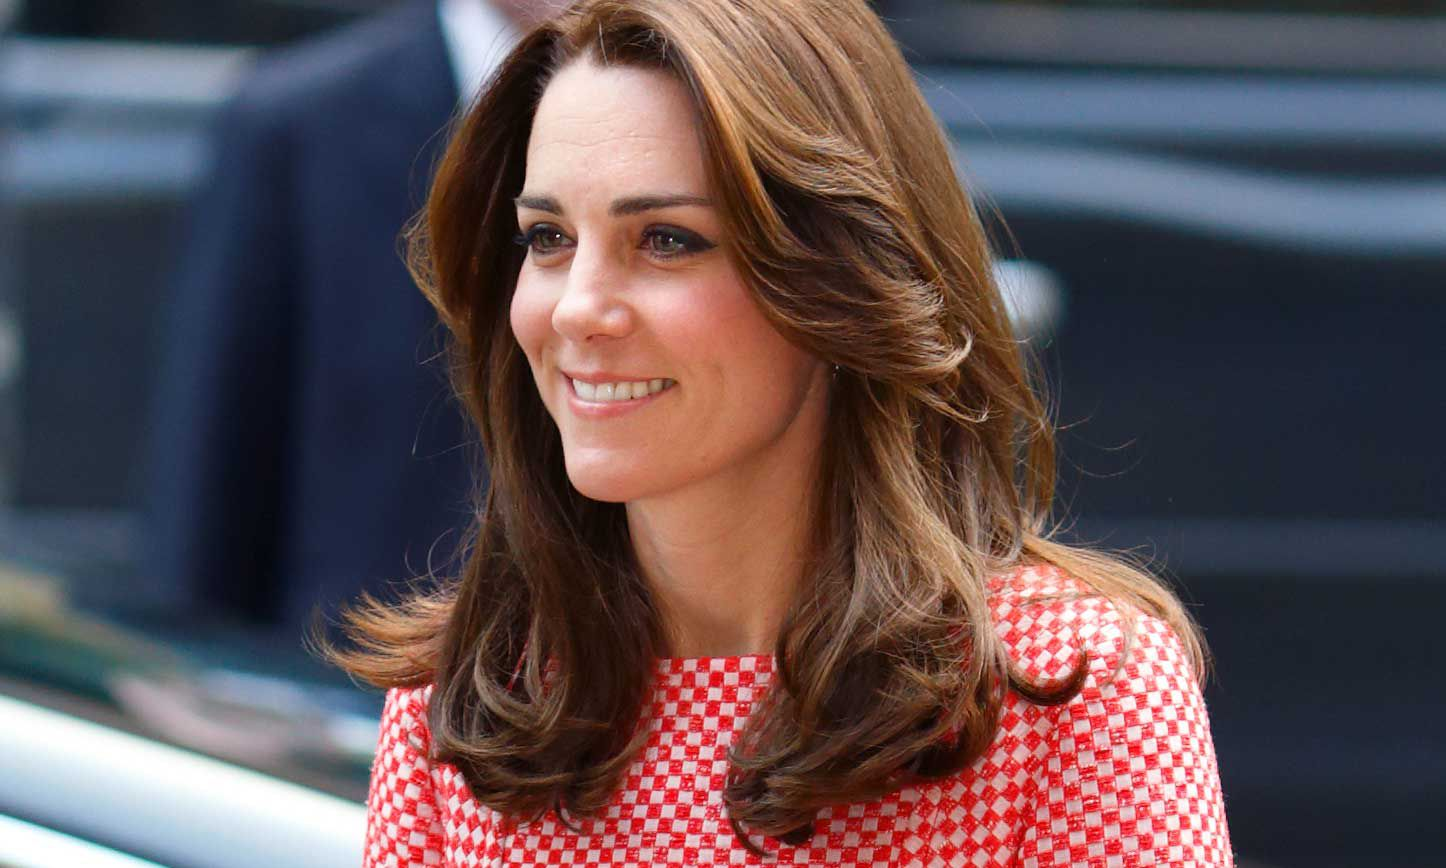 How to get Kate Middleton's Chelsea blow dry